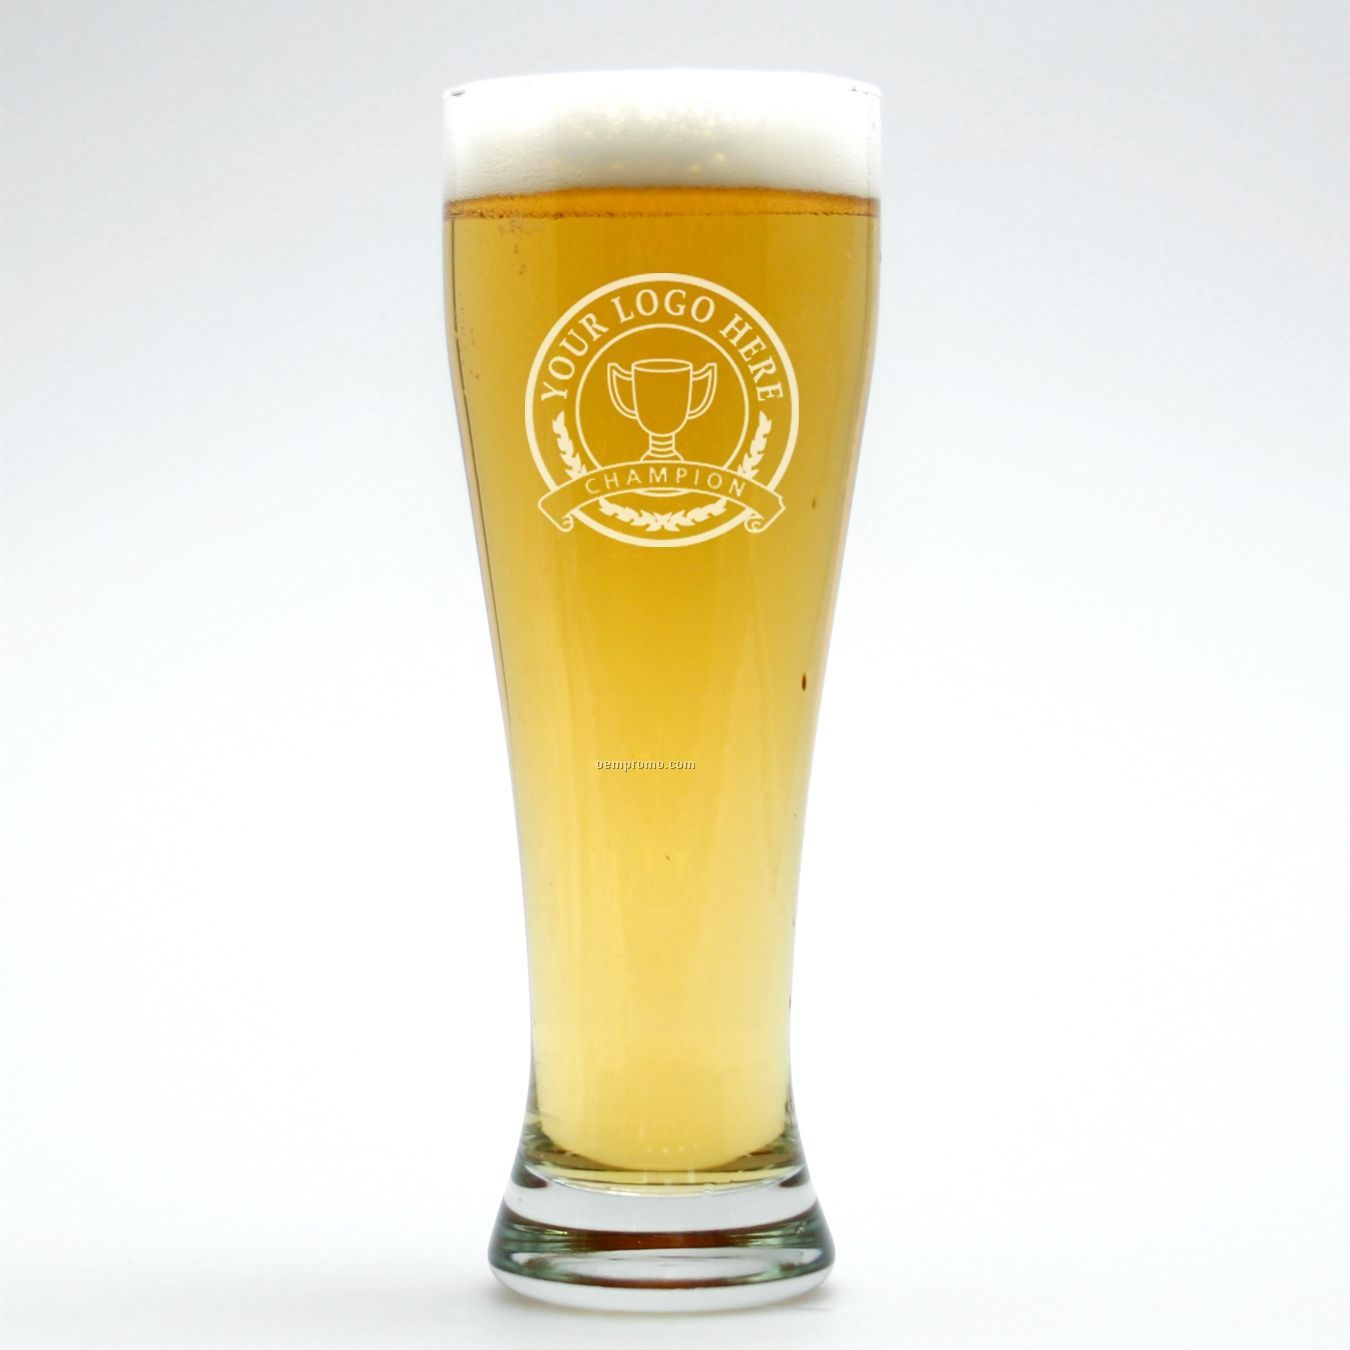 22 Oz. Signature Tall Beer Glass (Set Of 2 - Deep Etch)